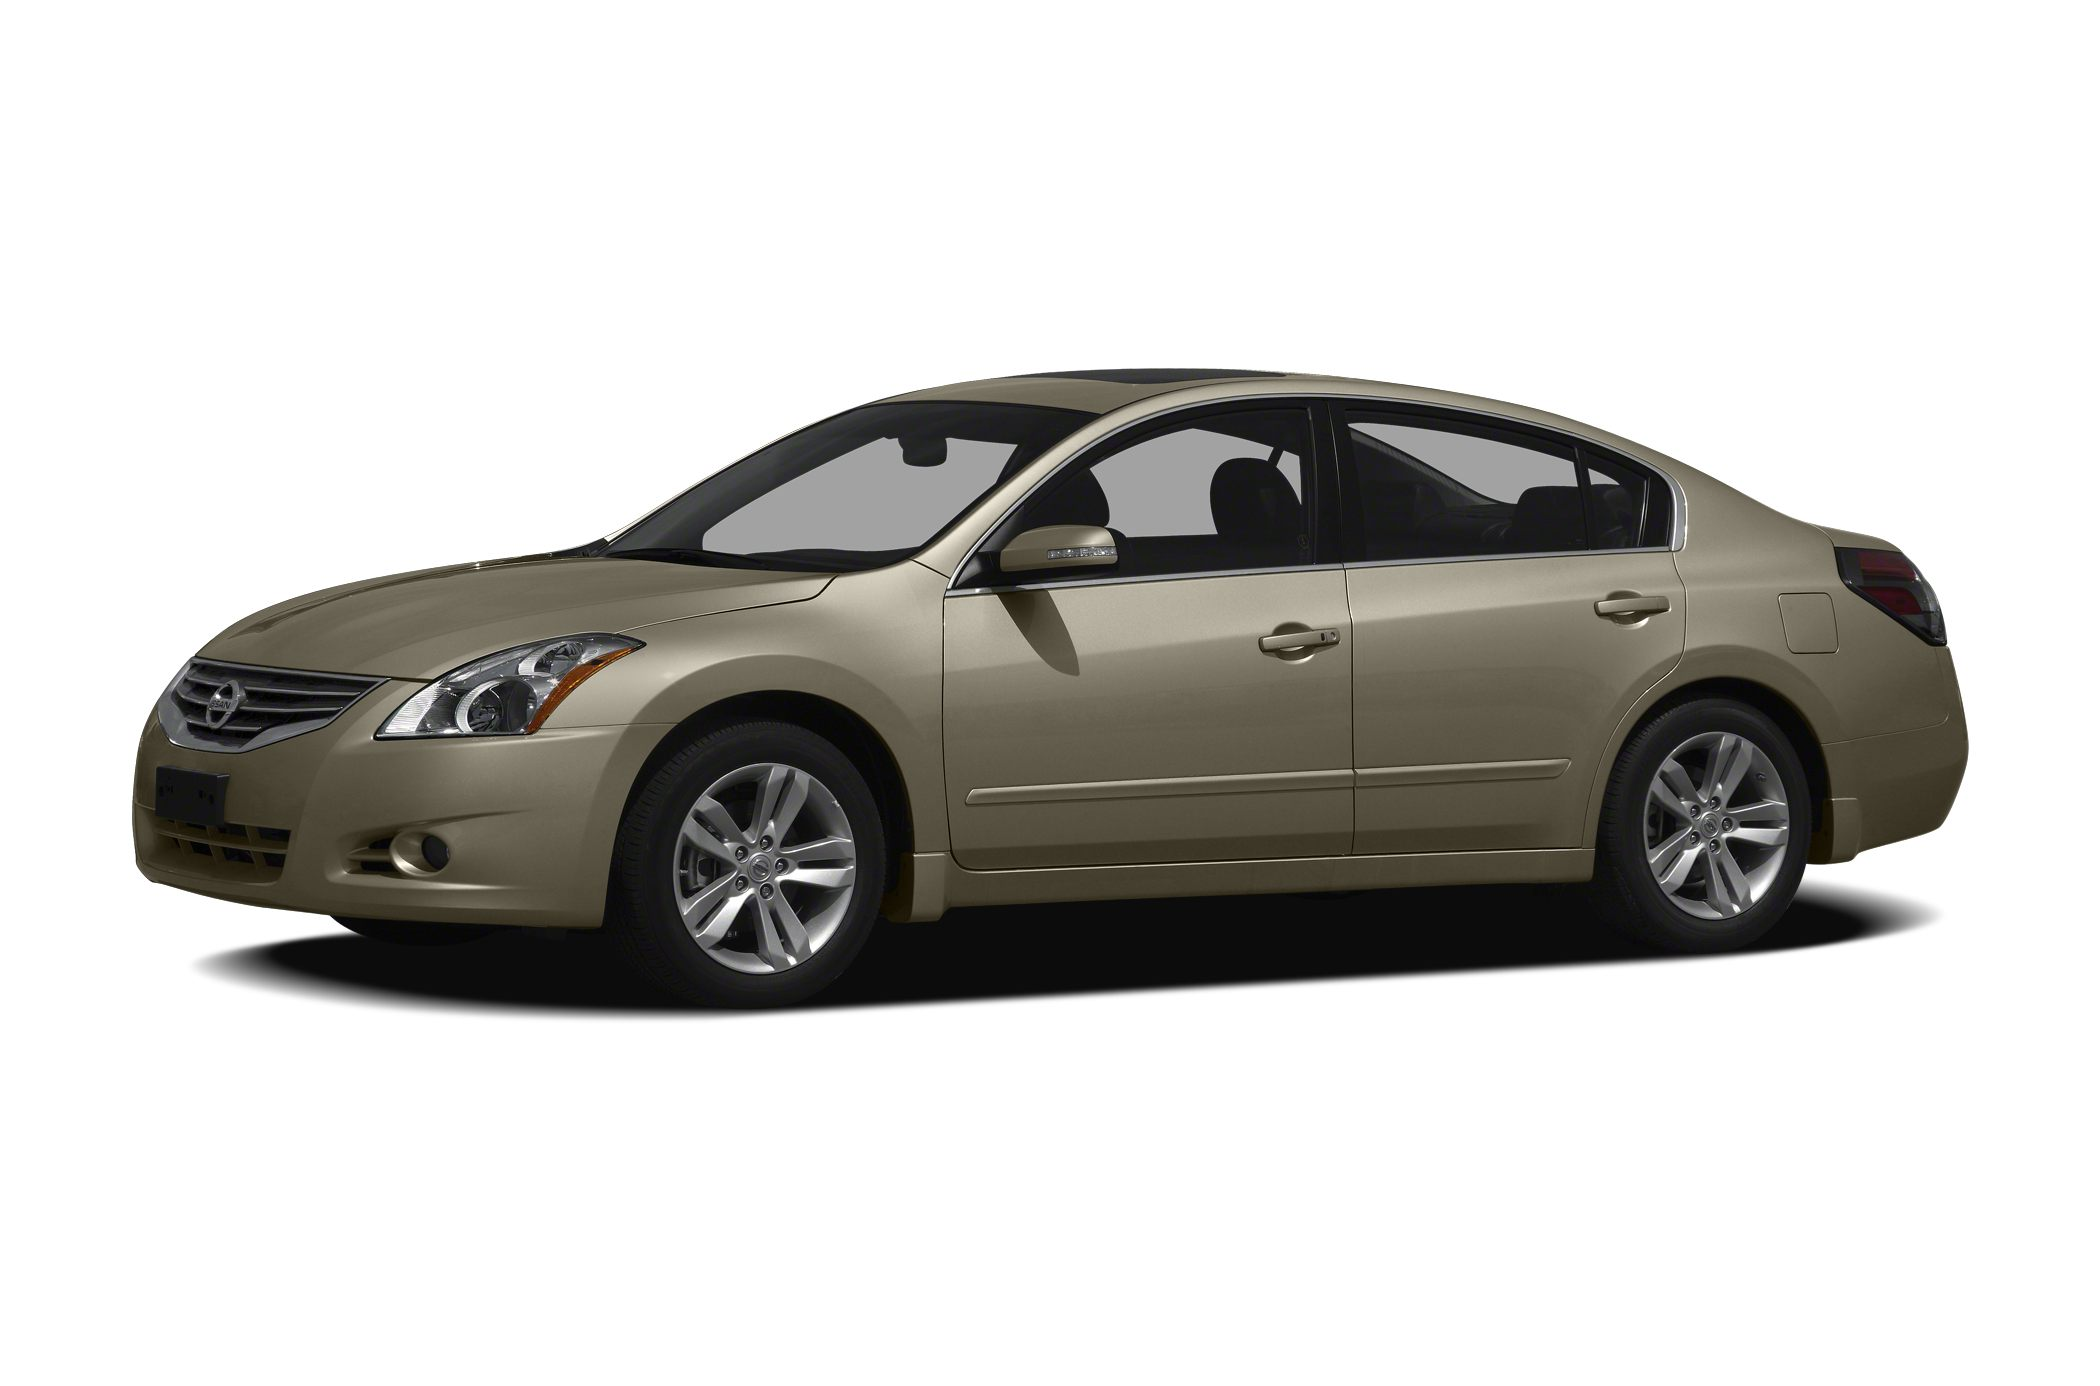 2012 Nissan Altima 2.5 Sedan for sale in Waynesboro for $16,395 with 20,802 miles.